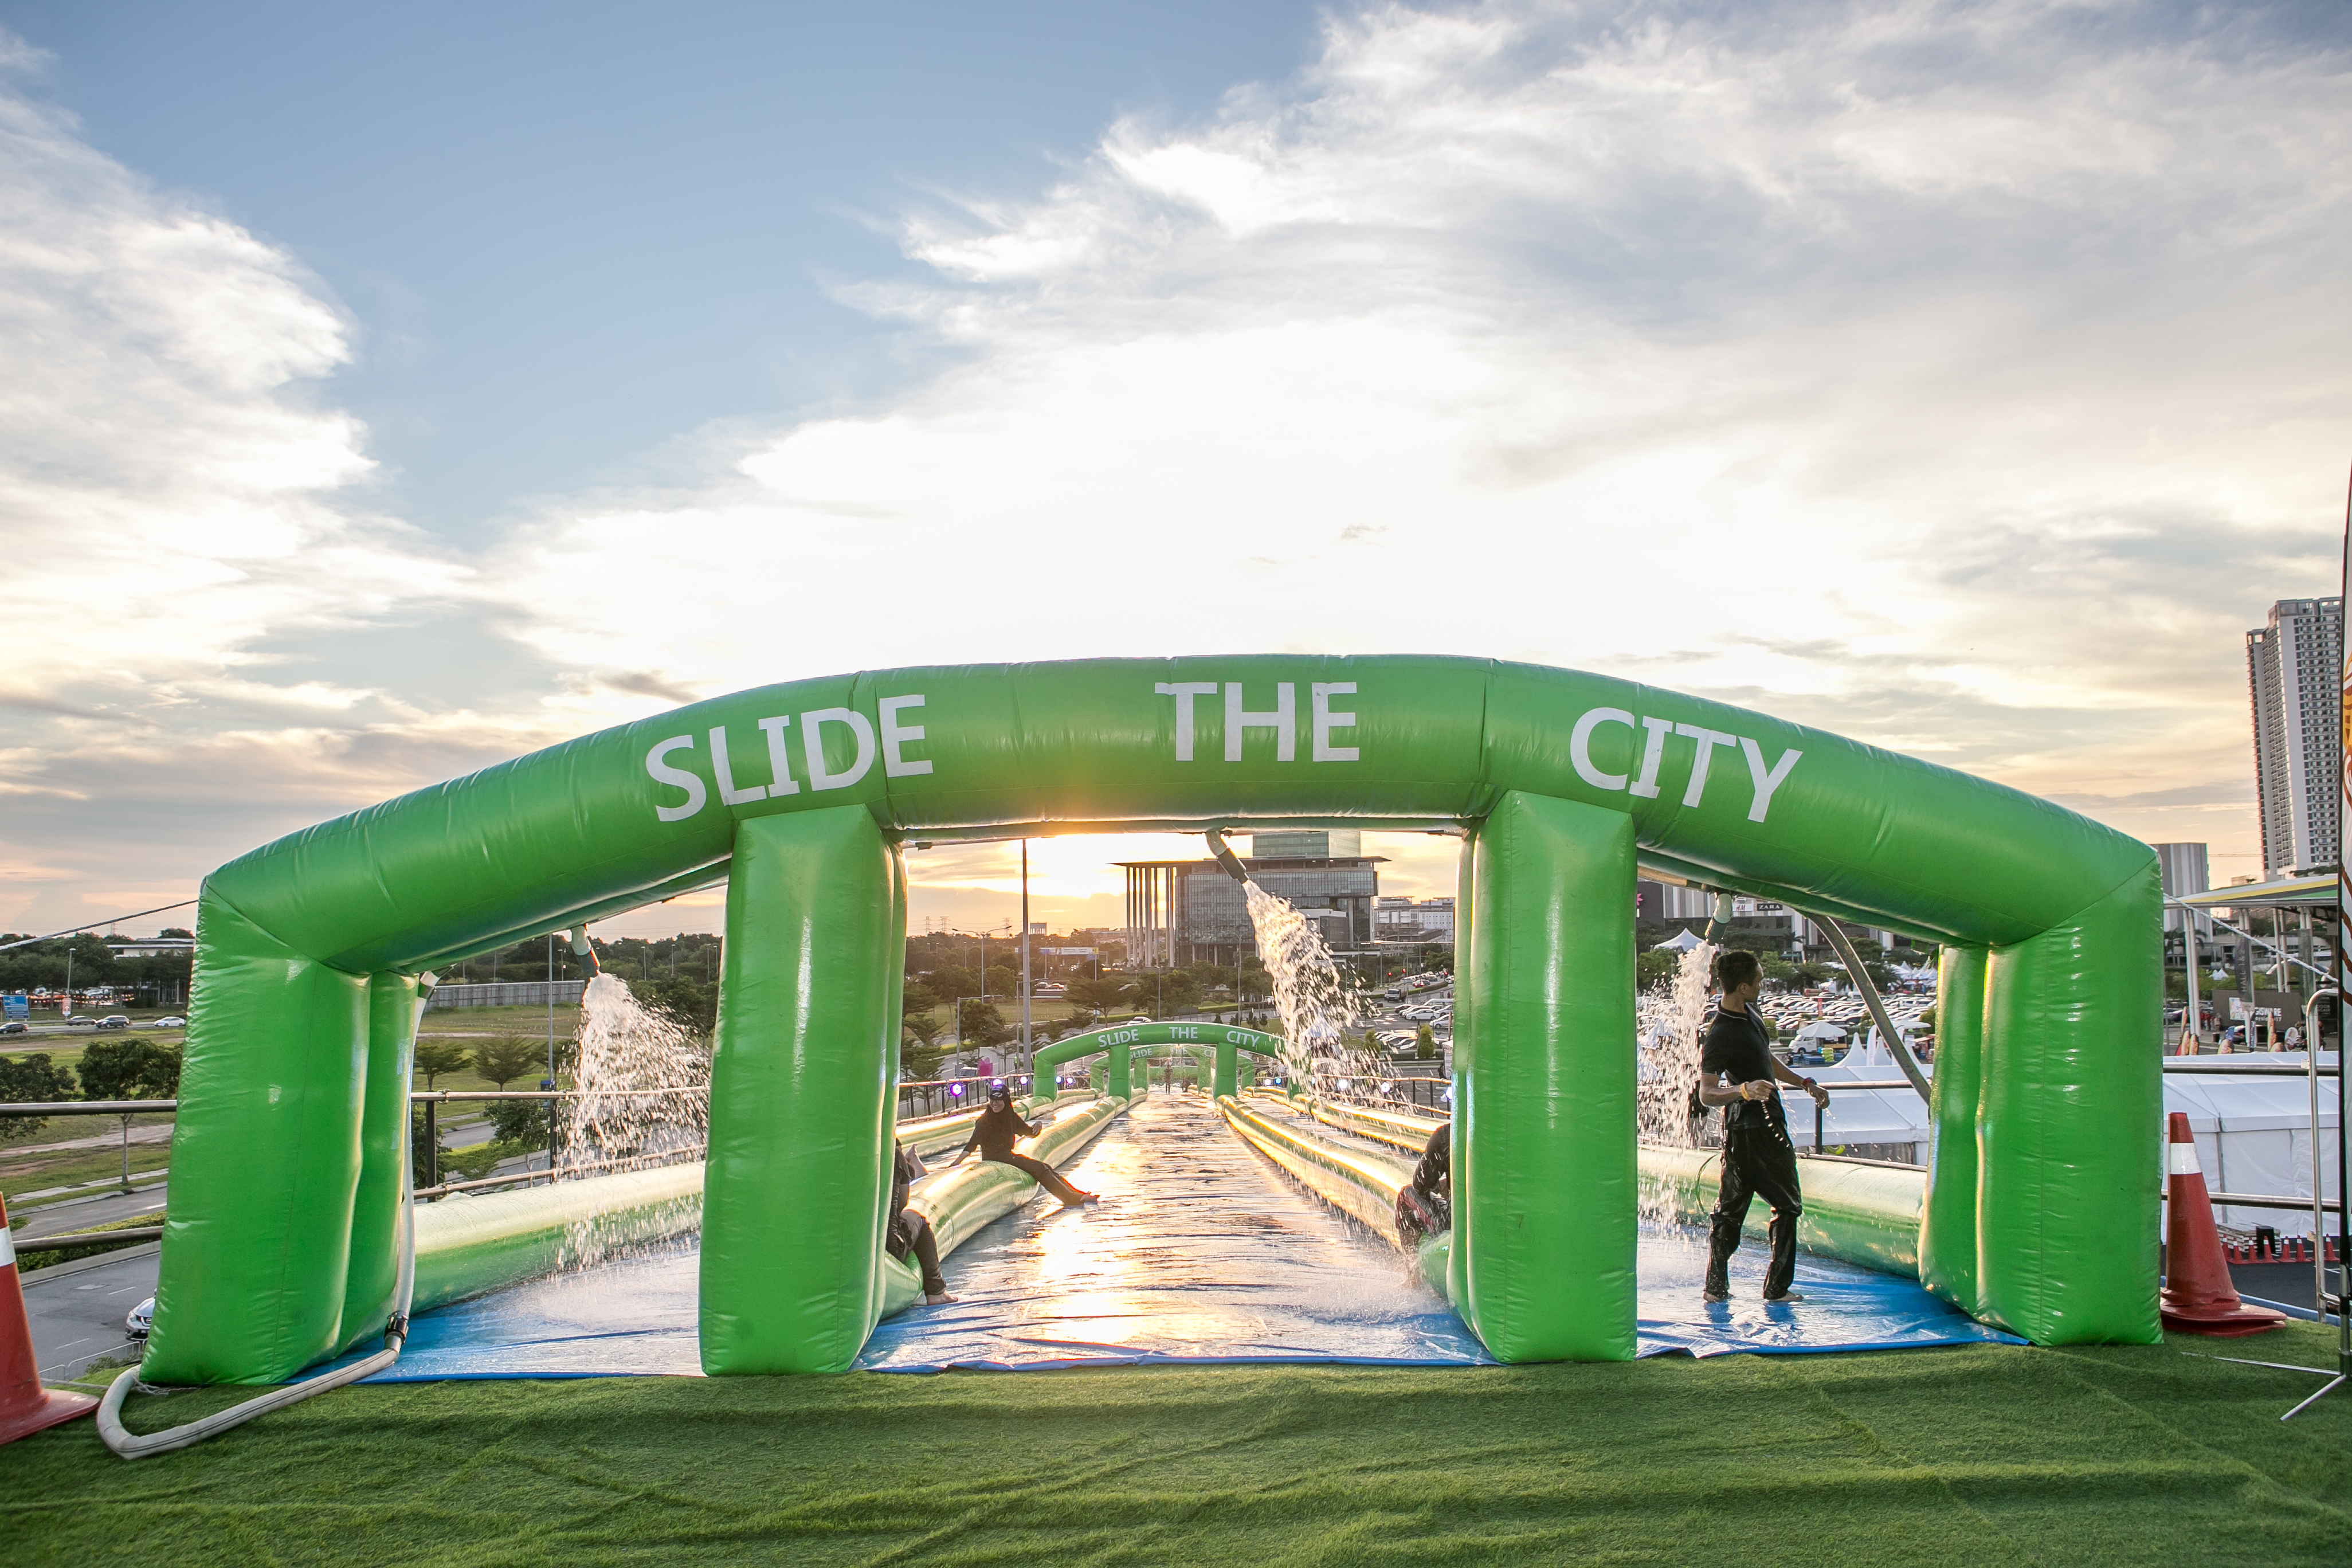 Enjoy night slides with Slide the City news cover image